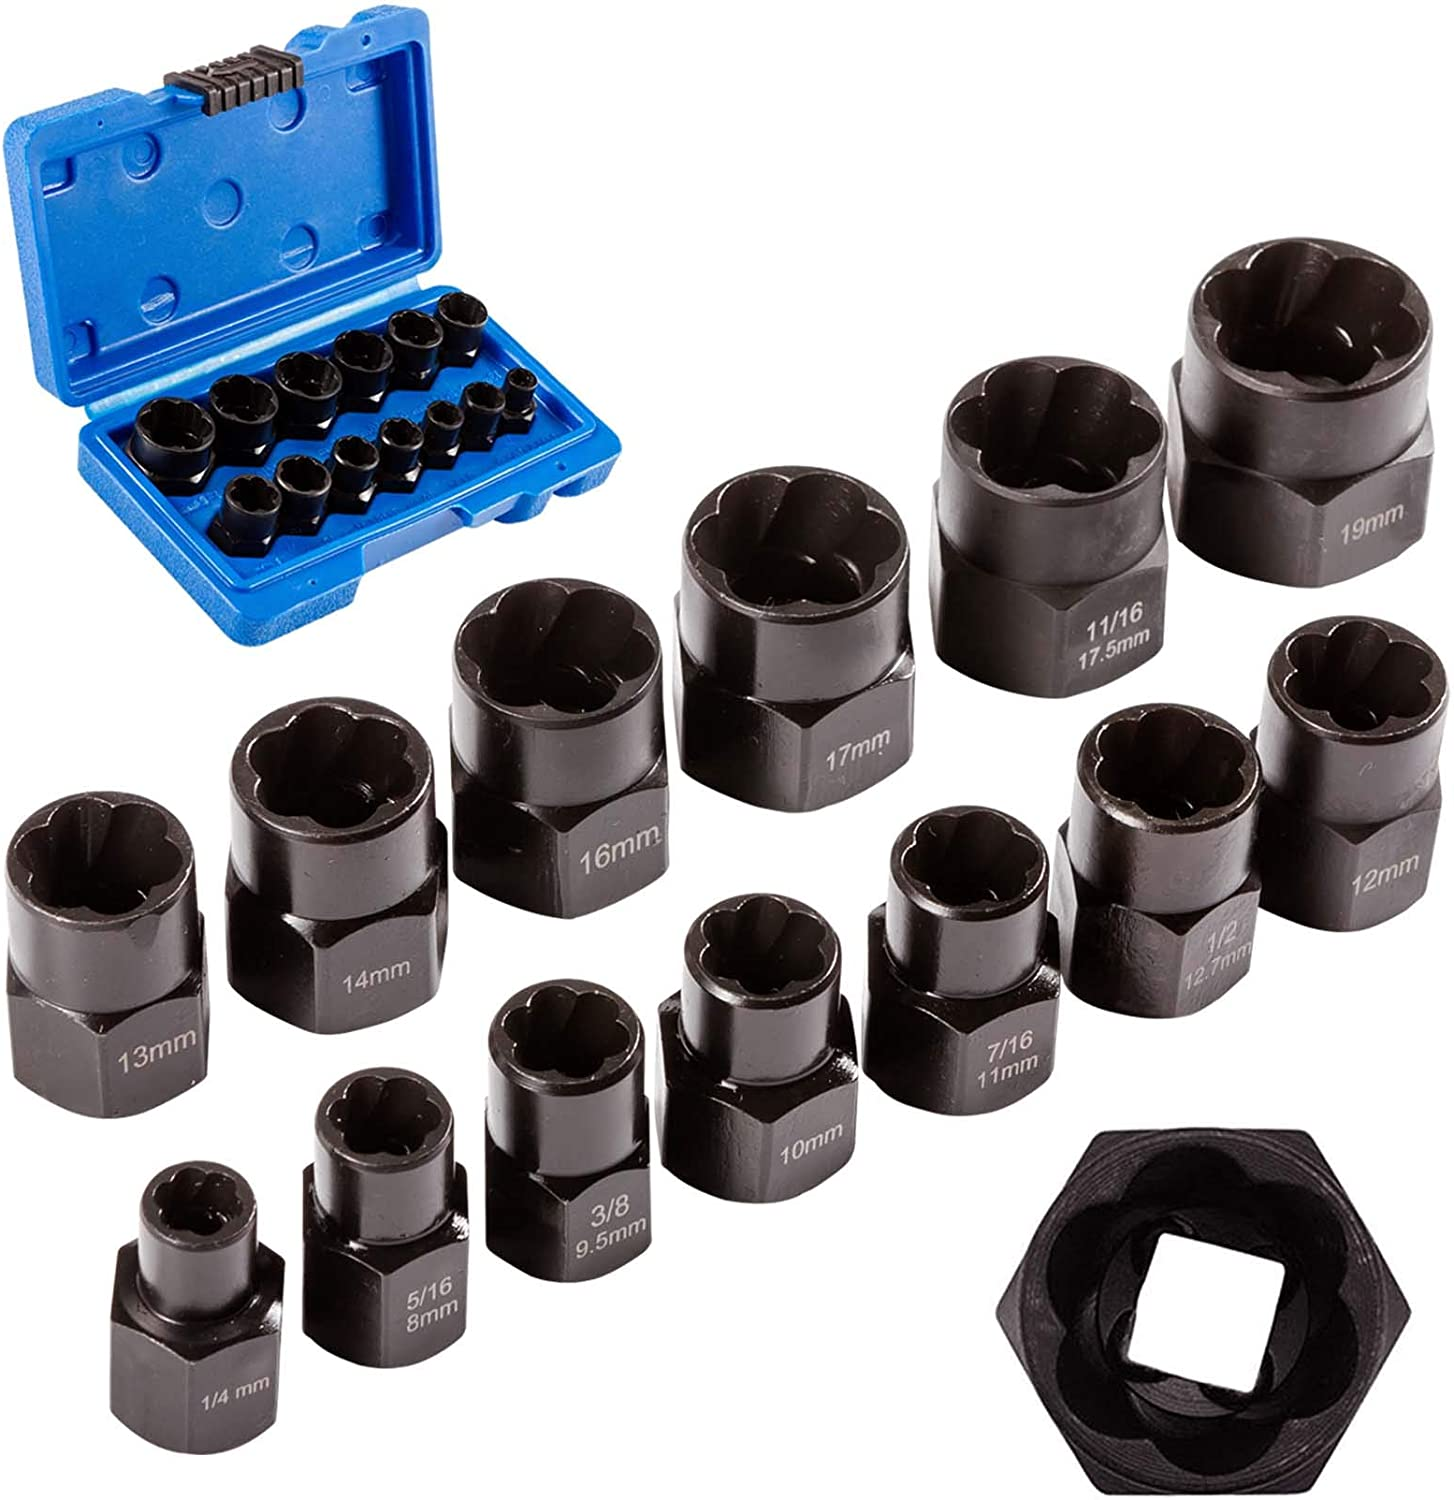 Bolt Extractor Nut Removal Tool Impact Bolt & Lug Nut Remover Set 14 Pieces Extractor Socket Set Automotive Tools